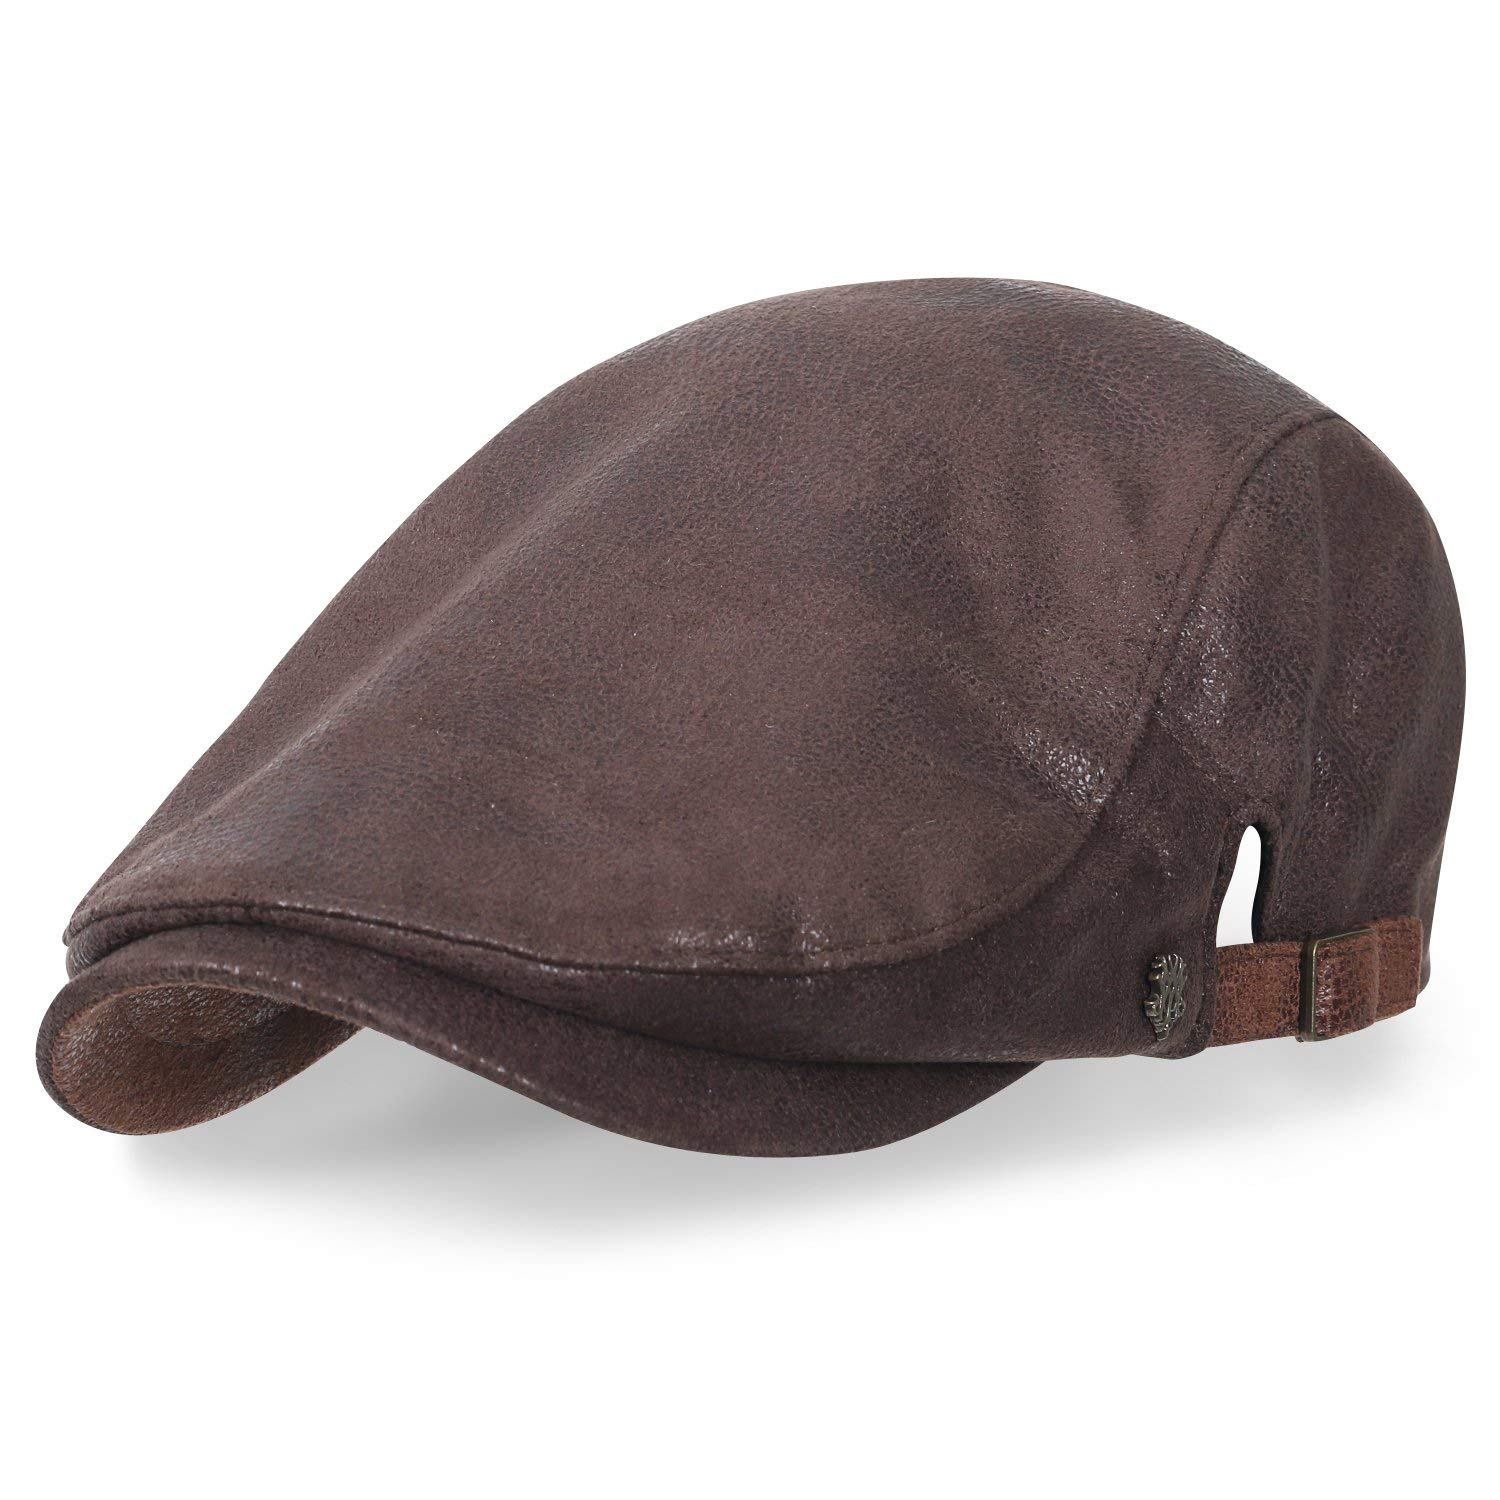 ililily Large Size Faux Leather Gatsby Newsboy Hat Cabbie Hunting Flat Cap